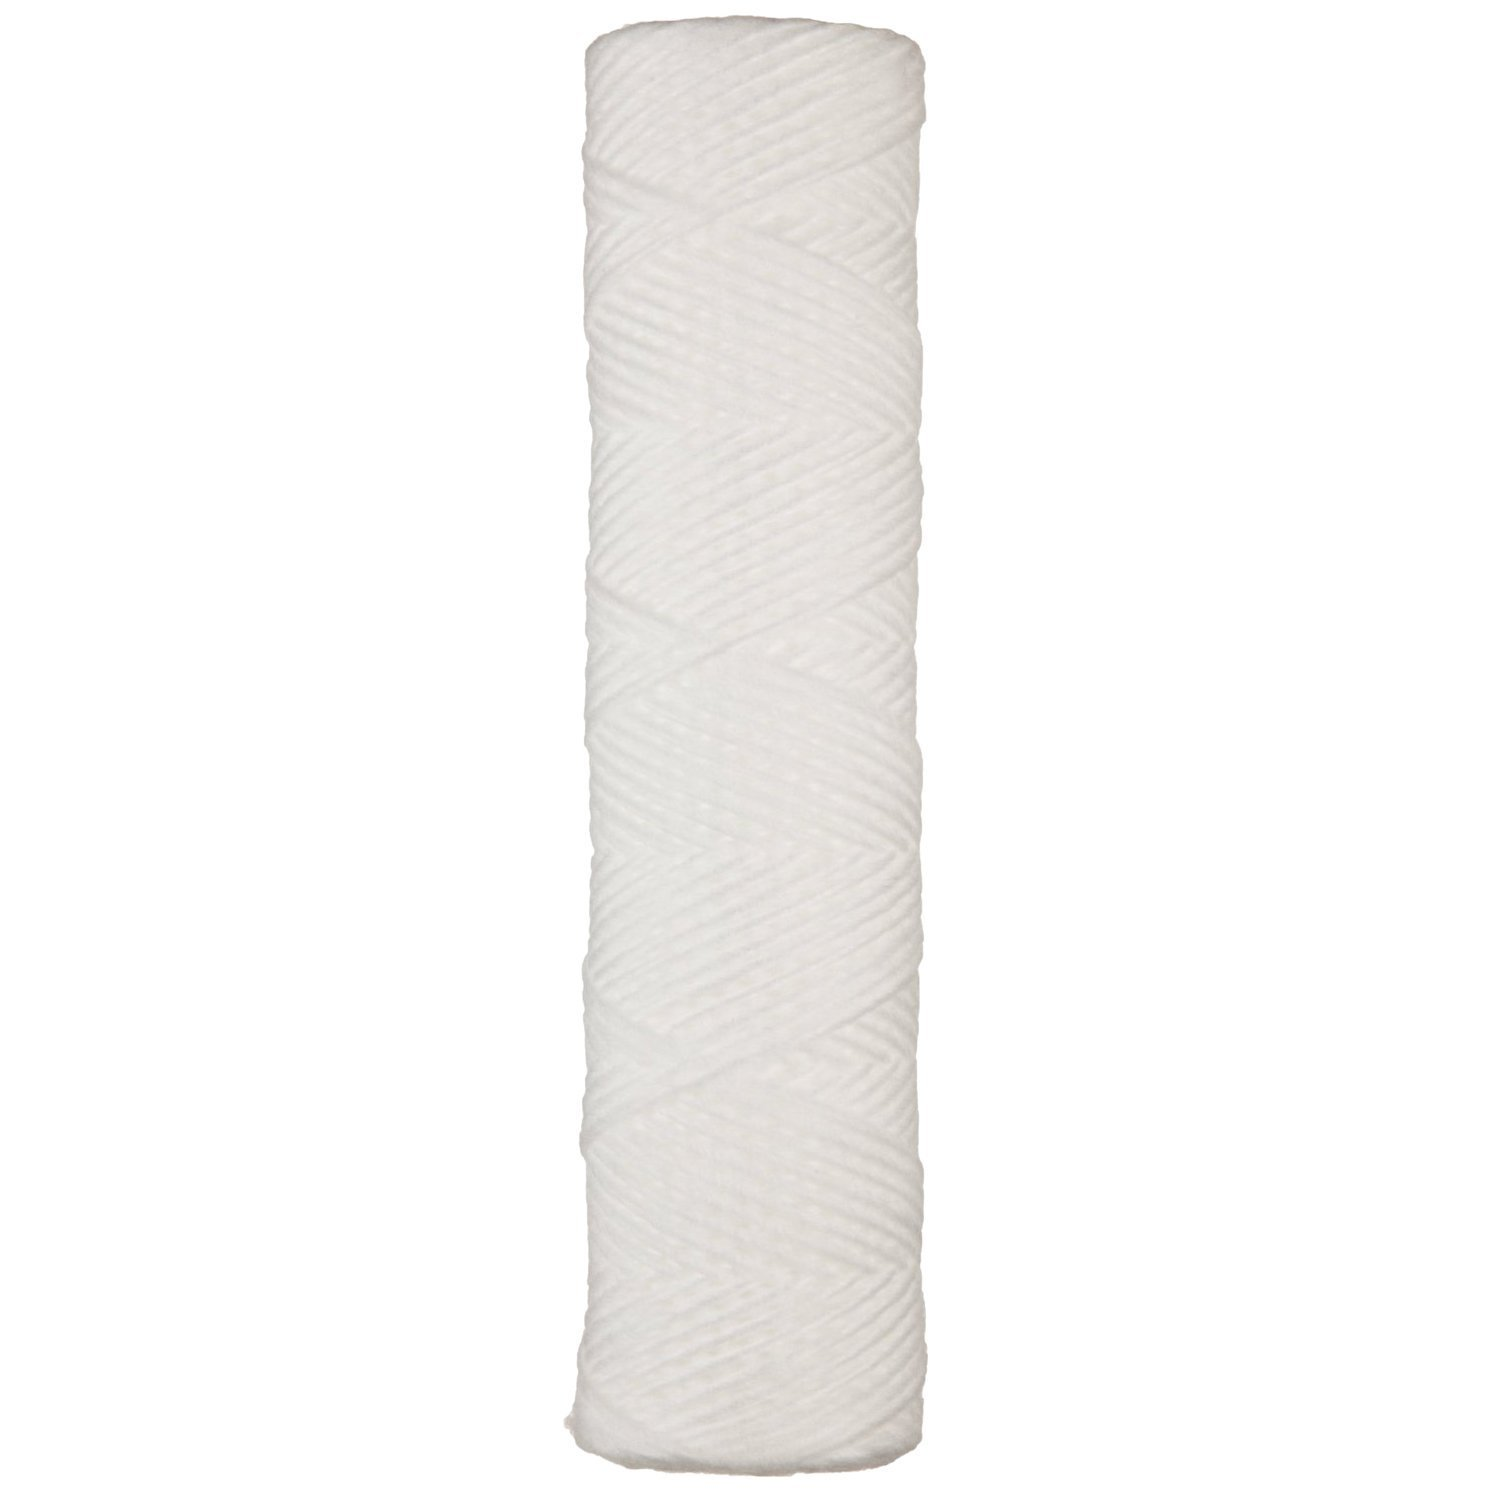 Parker 39R30S Fulflo Honeycomb Filter Cartridge, String Wound, Cotton FDA Grade Medium and 316 Stainless Steel Core, 1'' ID, 2-7/16'' OD, 30-3/16'' Length, 1 Micron (Pack of 6)